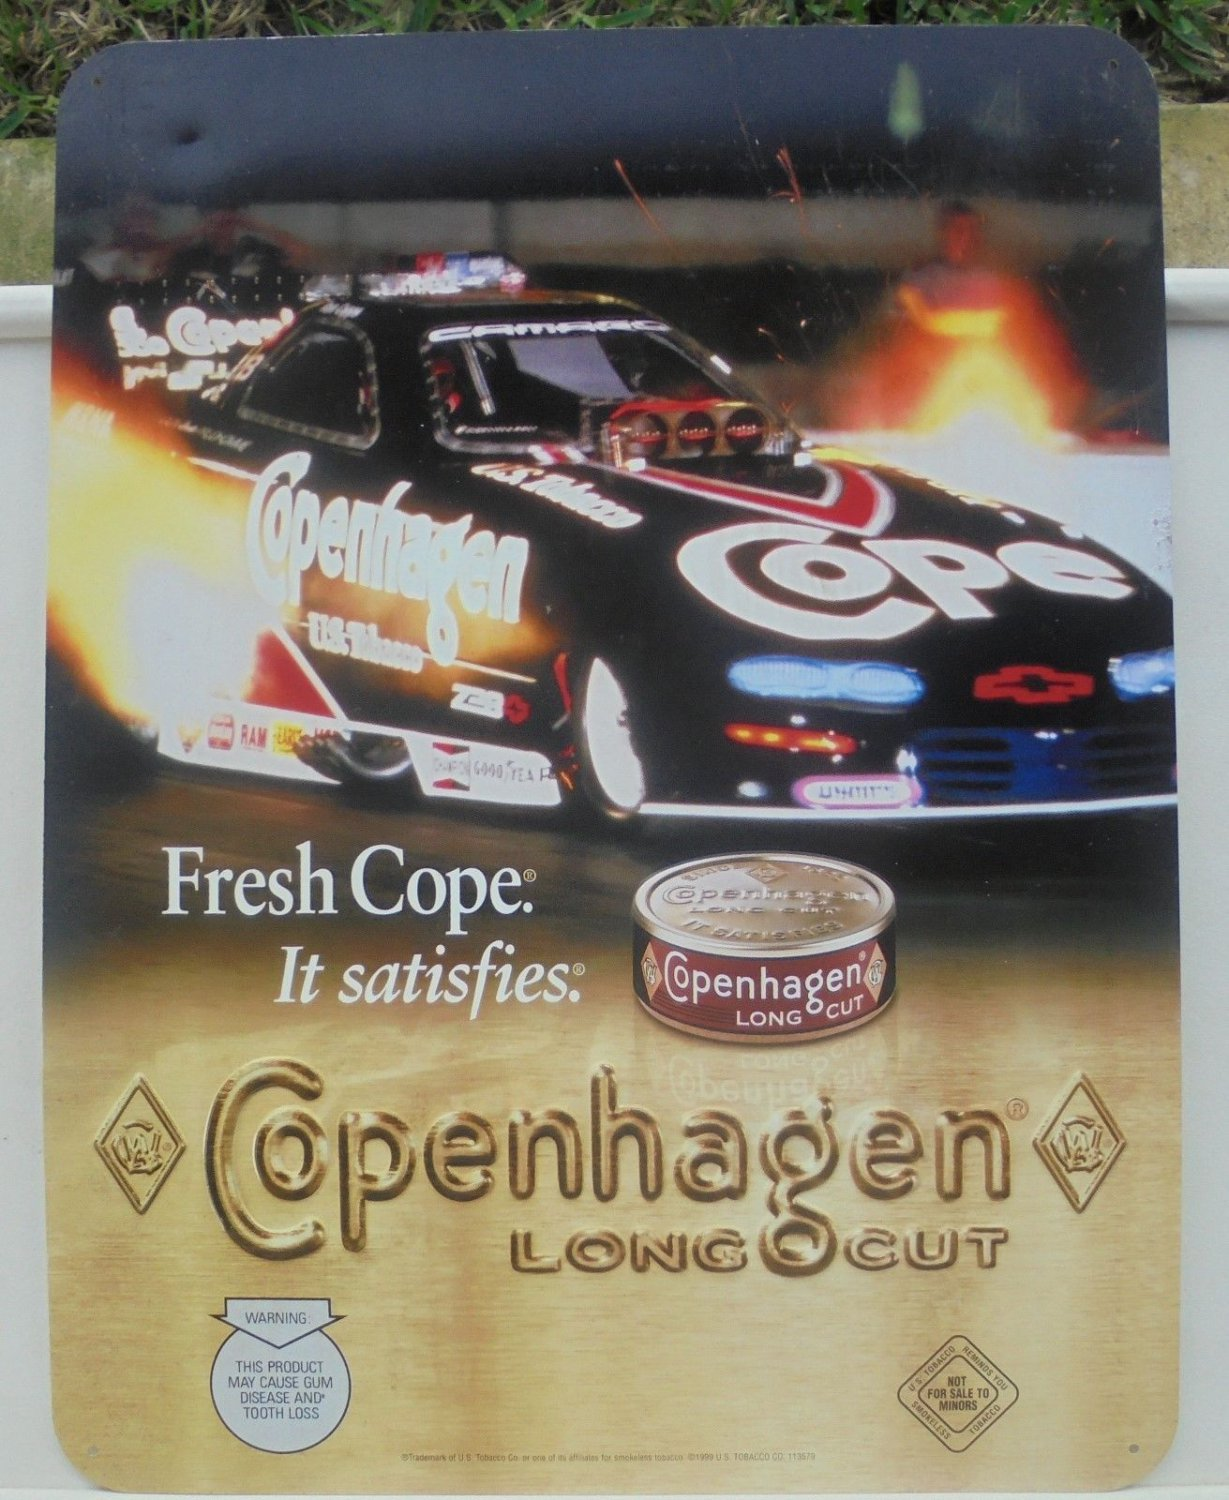 "COPENHAGEN LONG CUT""FUNNY CAR"" RACING METAL SIGN 1999"